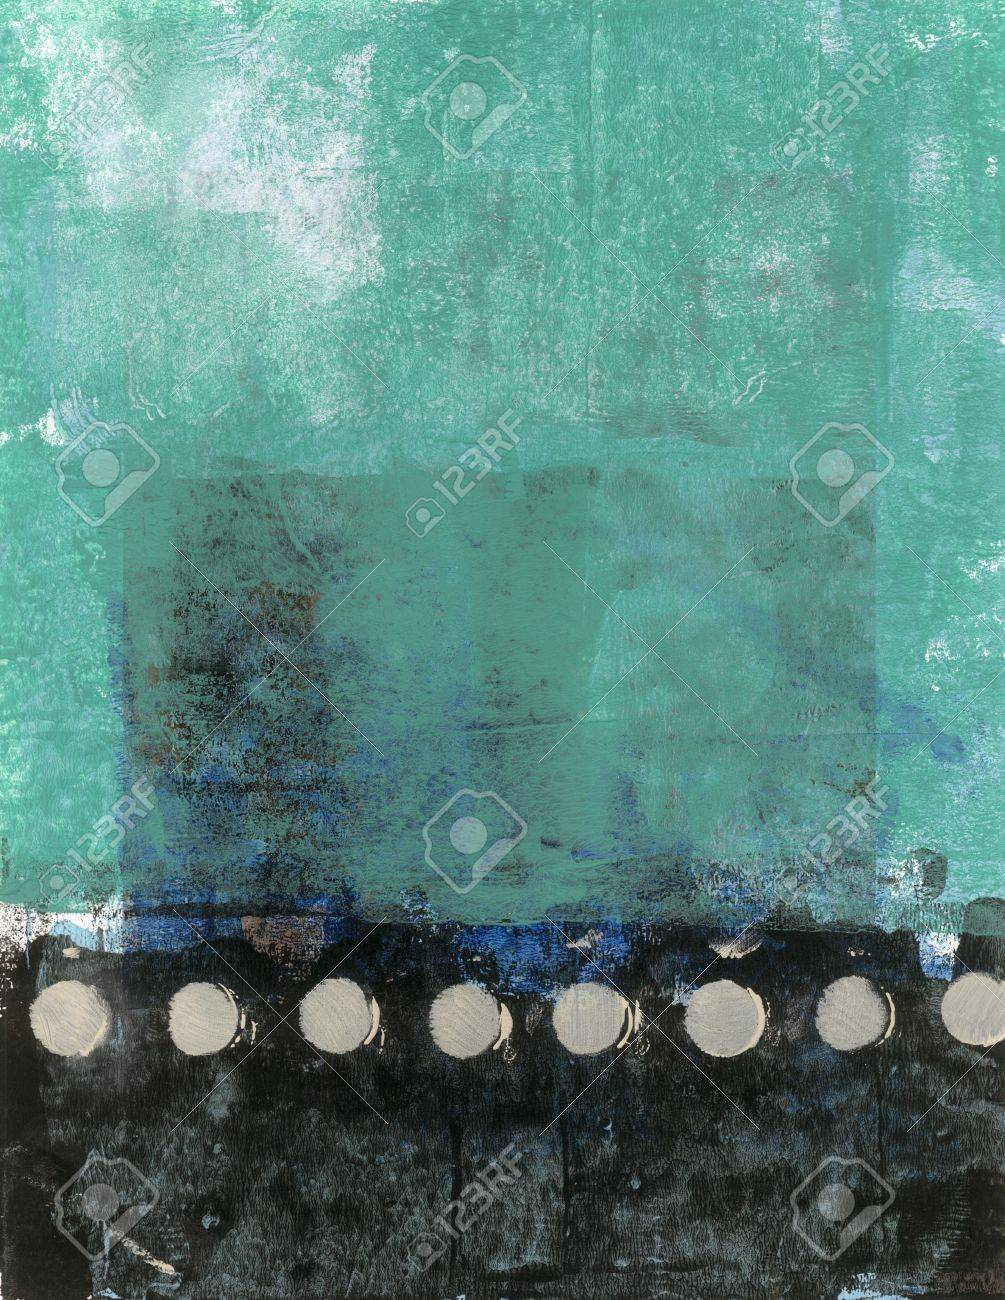 Abstract painting to be used in design - 15512602